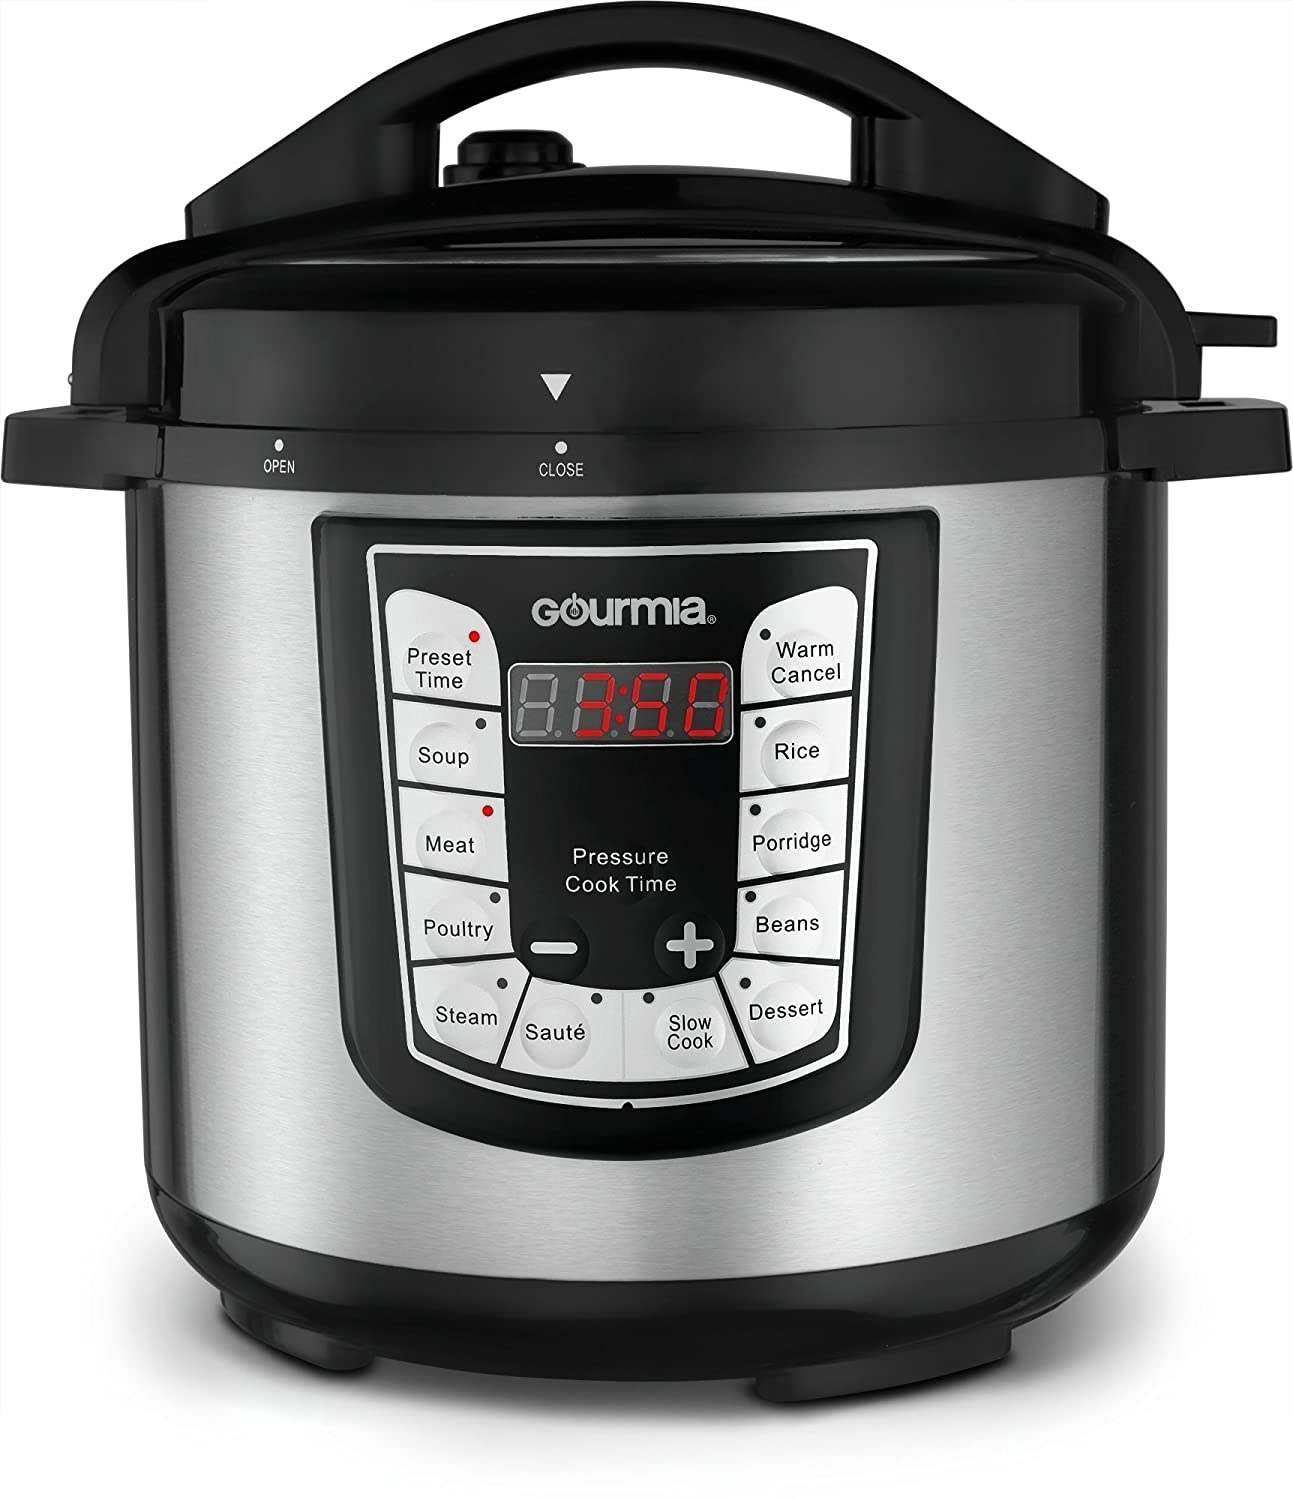 Gourmia GPC625 6 Qt Multi-Mode SmartPot Pressure Cooker | 13 Cook Modes | Removable Nonstick Pot | 24-Hour Delay Timer | Automatic Keep Warm | LCD Display | Pressure Sensor Lid Lock | Recipe Book